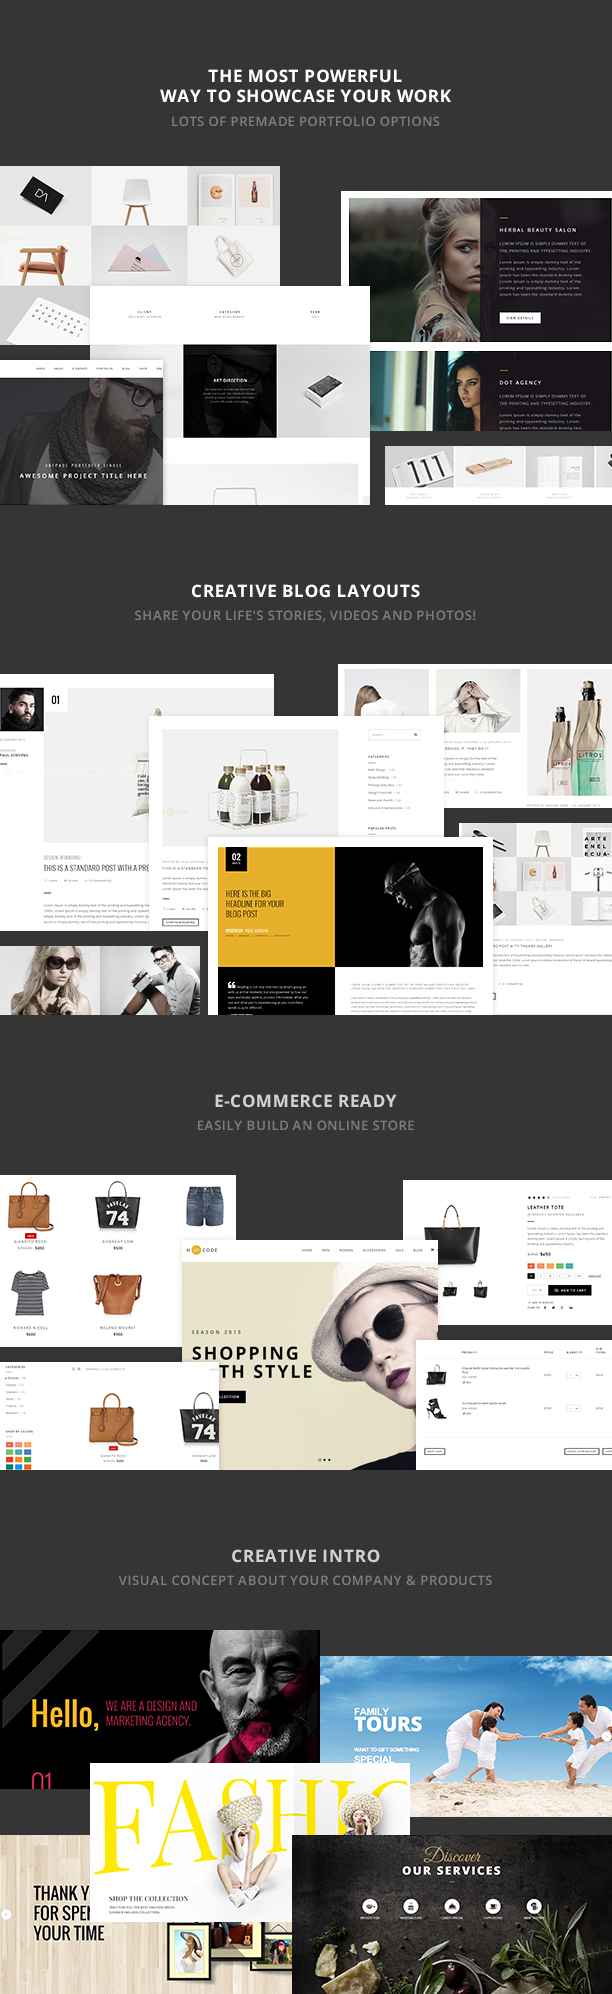 H-Code Multipurpose OnePage & Multi Page Template - 9